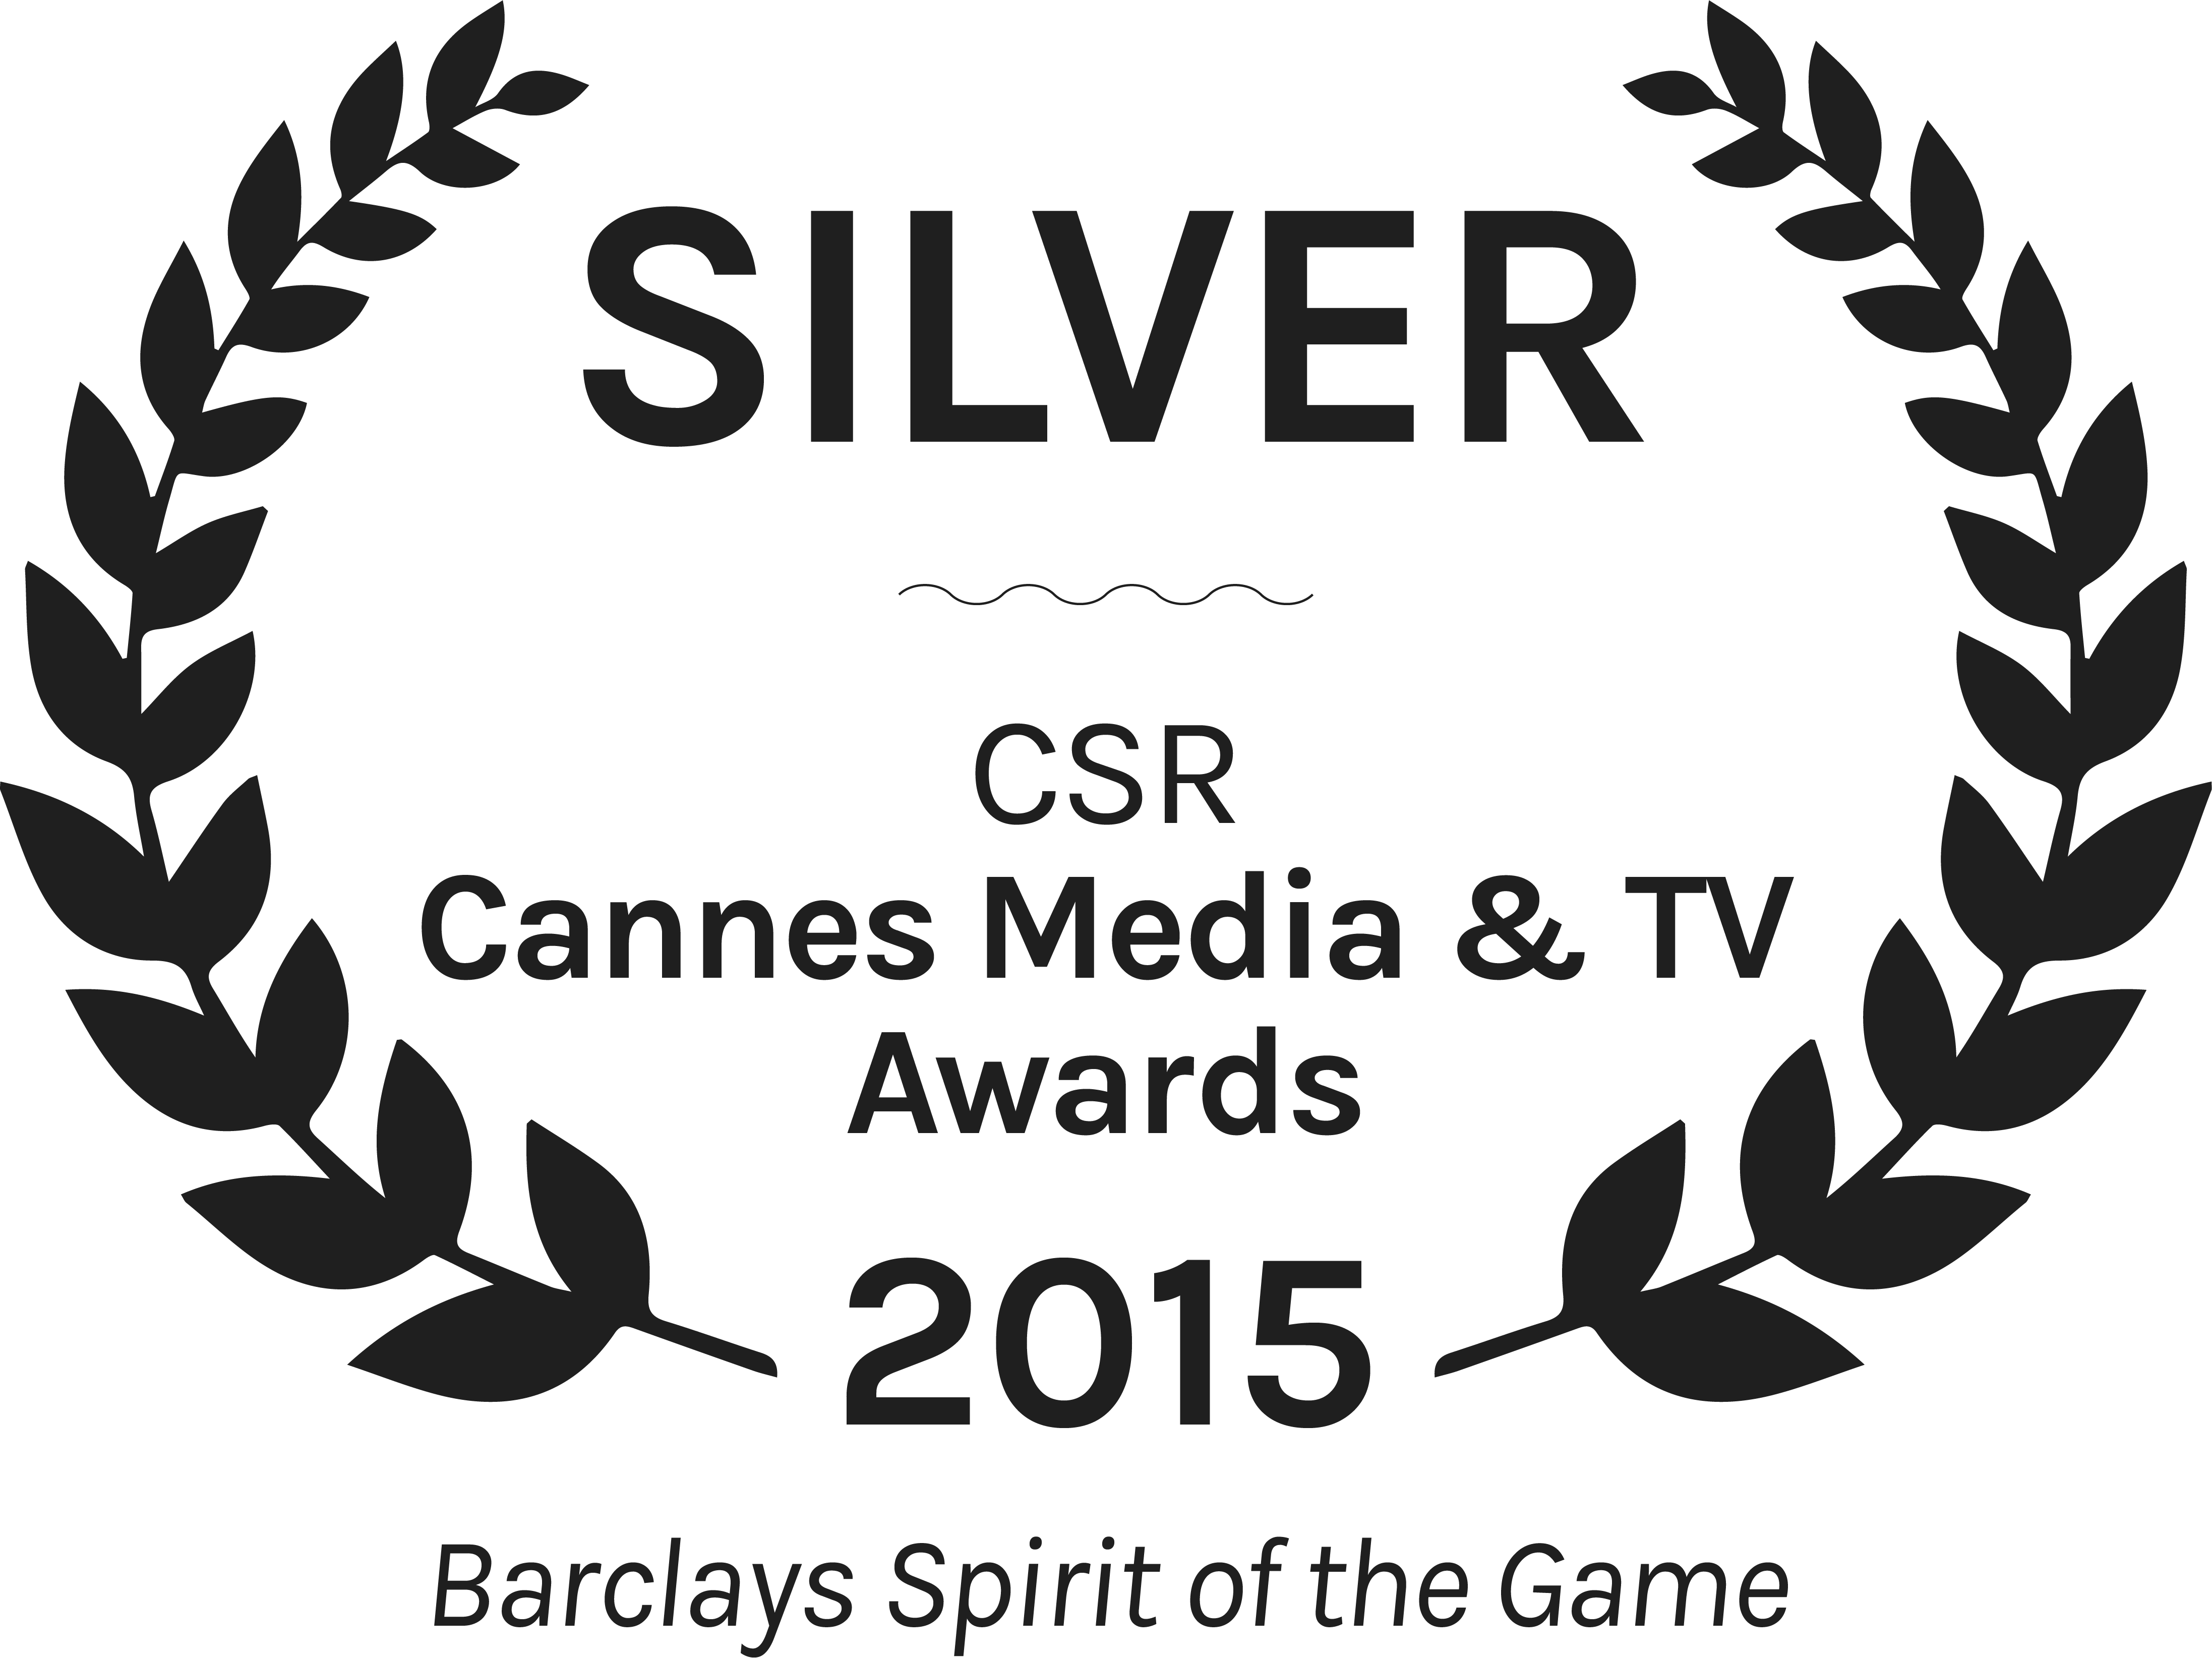 Barclays-Spirit-of-the-Game-Silver-Sponsoring-CSR-Cannes-Media-TV-Awards-2015.png